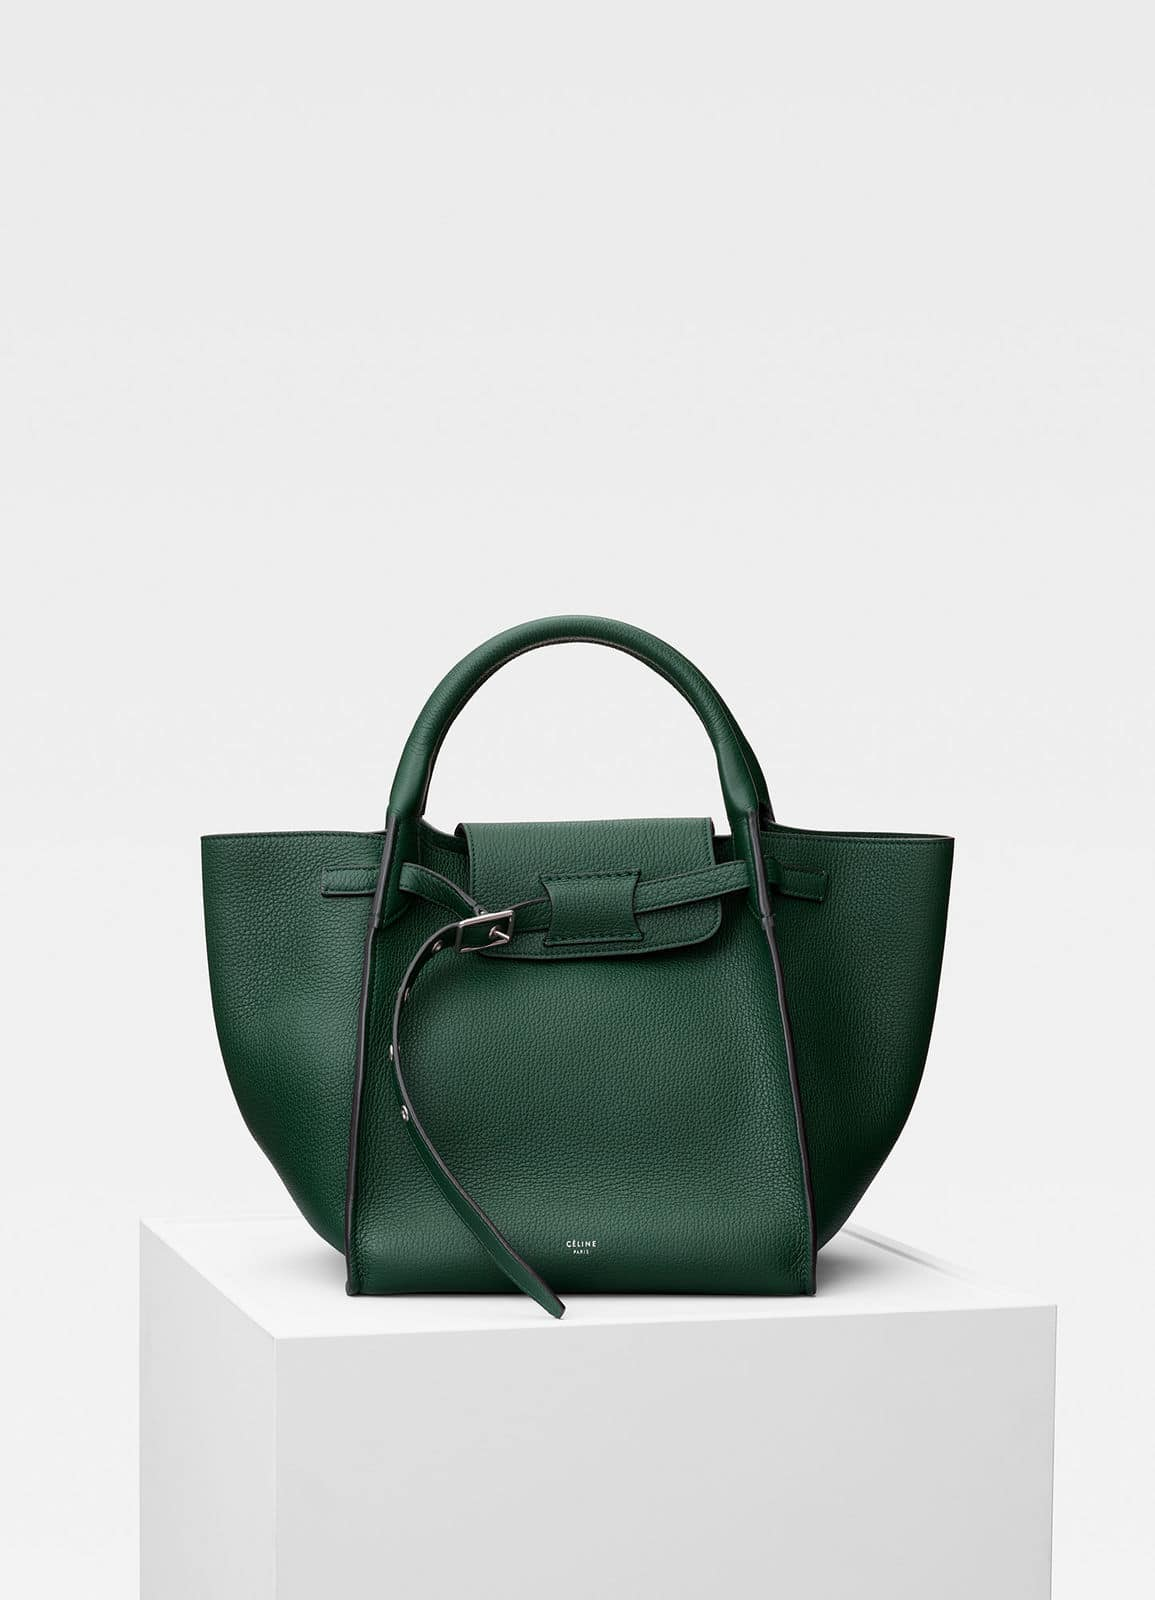 d18bfe782858 Celine Fall 2018 Bag Collection Featuring The Made in Tote Bags